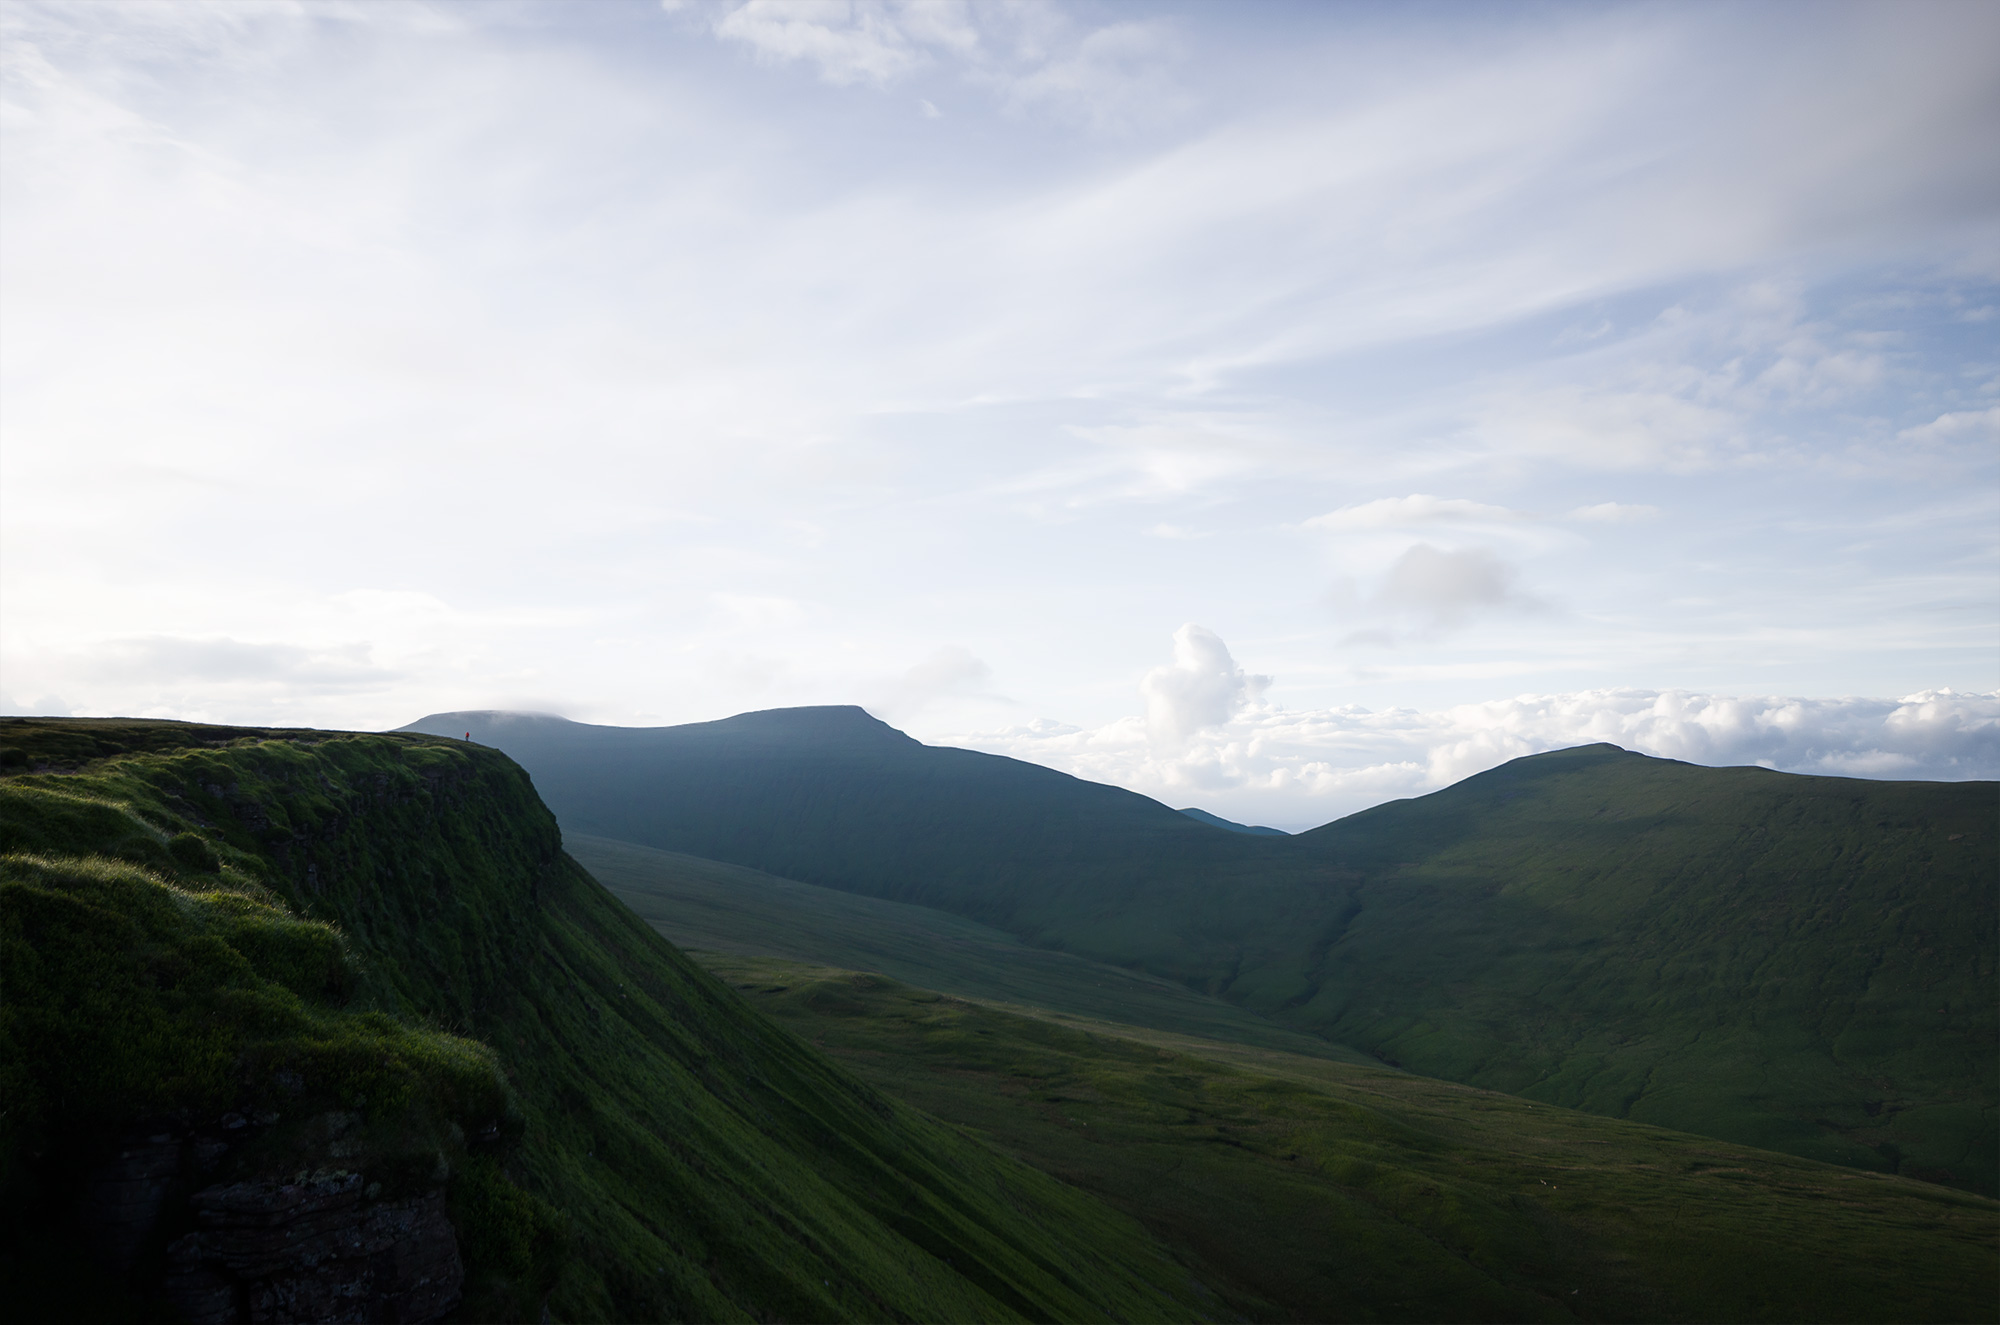 Feeling Rather Small - Craig y Fan Ddu, Brecon Beacons NP